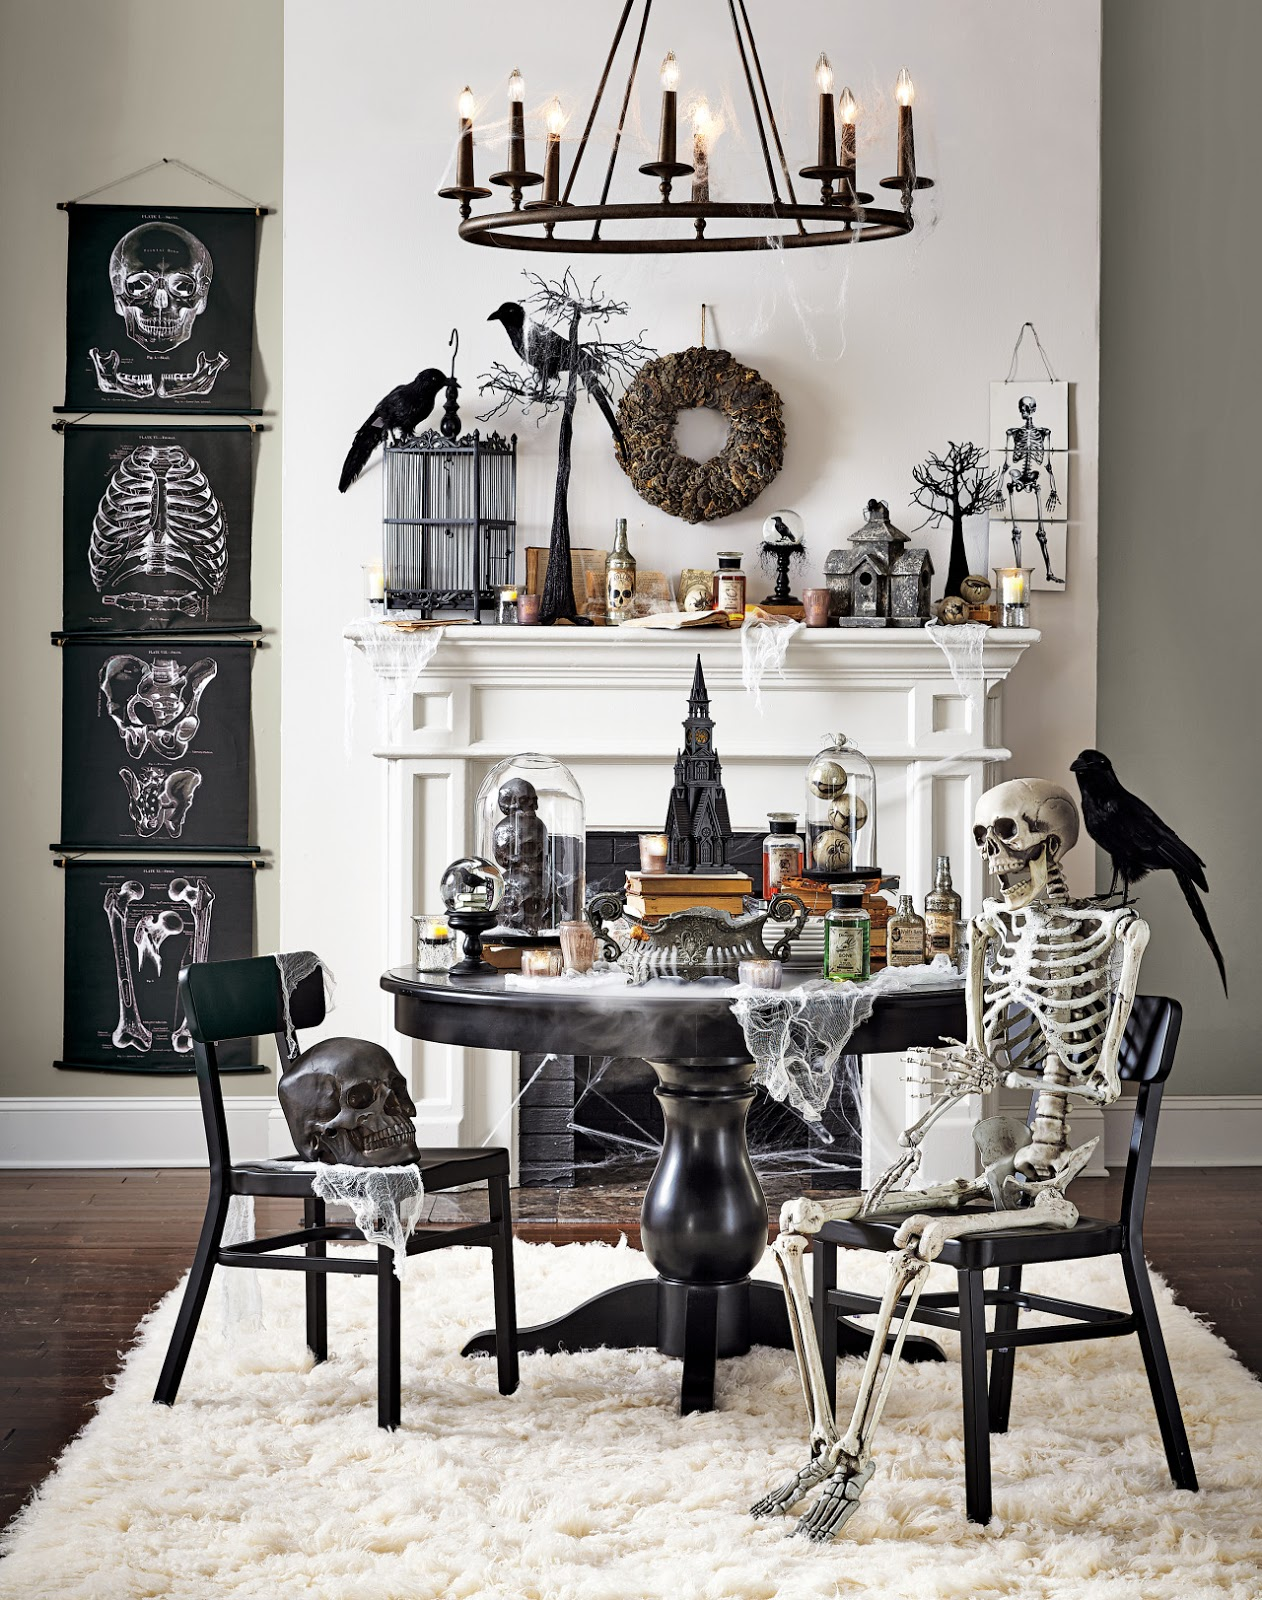 Halloween Collection Kylie Cosmetics Makeup Kylie Jenner: Vintage Halloween Collector: 2015 Halloween At Home